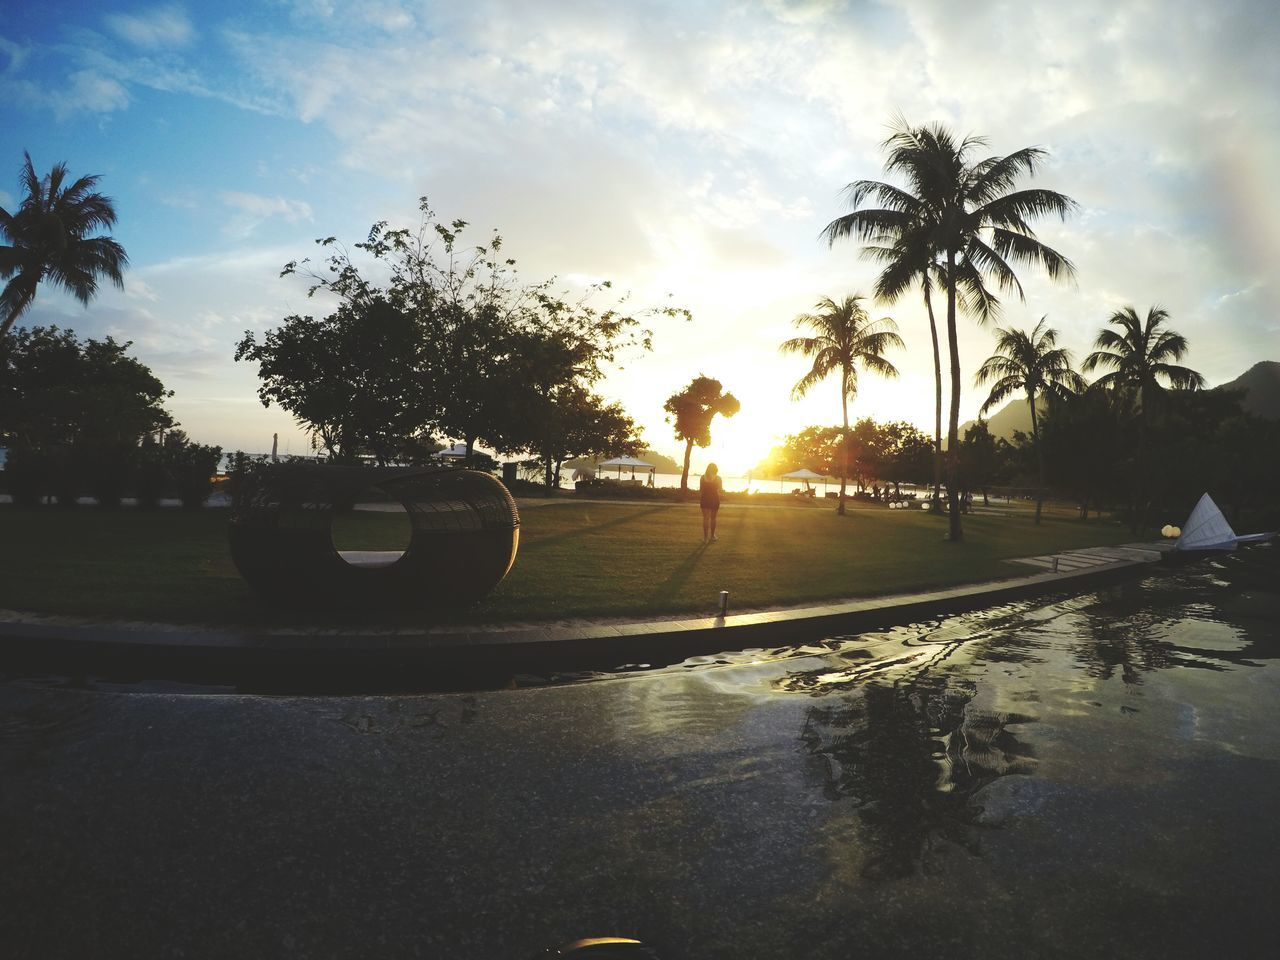 palm tree, tree, sky, sunset, water, silhouette, outdoors, cloud - sky, sun, nature, road, no people, beauty in nature, growth, scenics, day